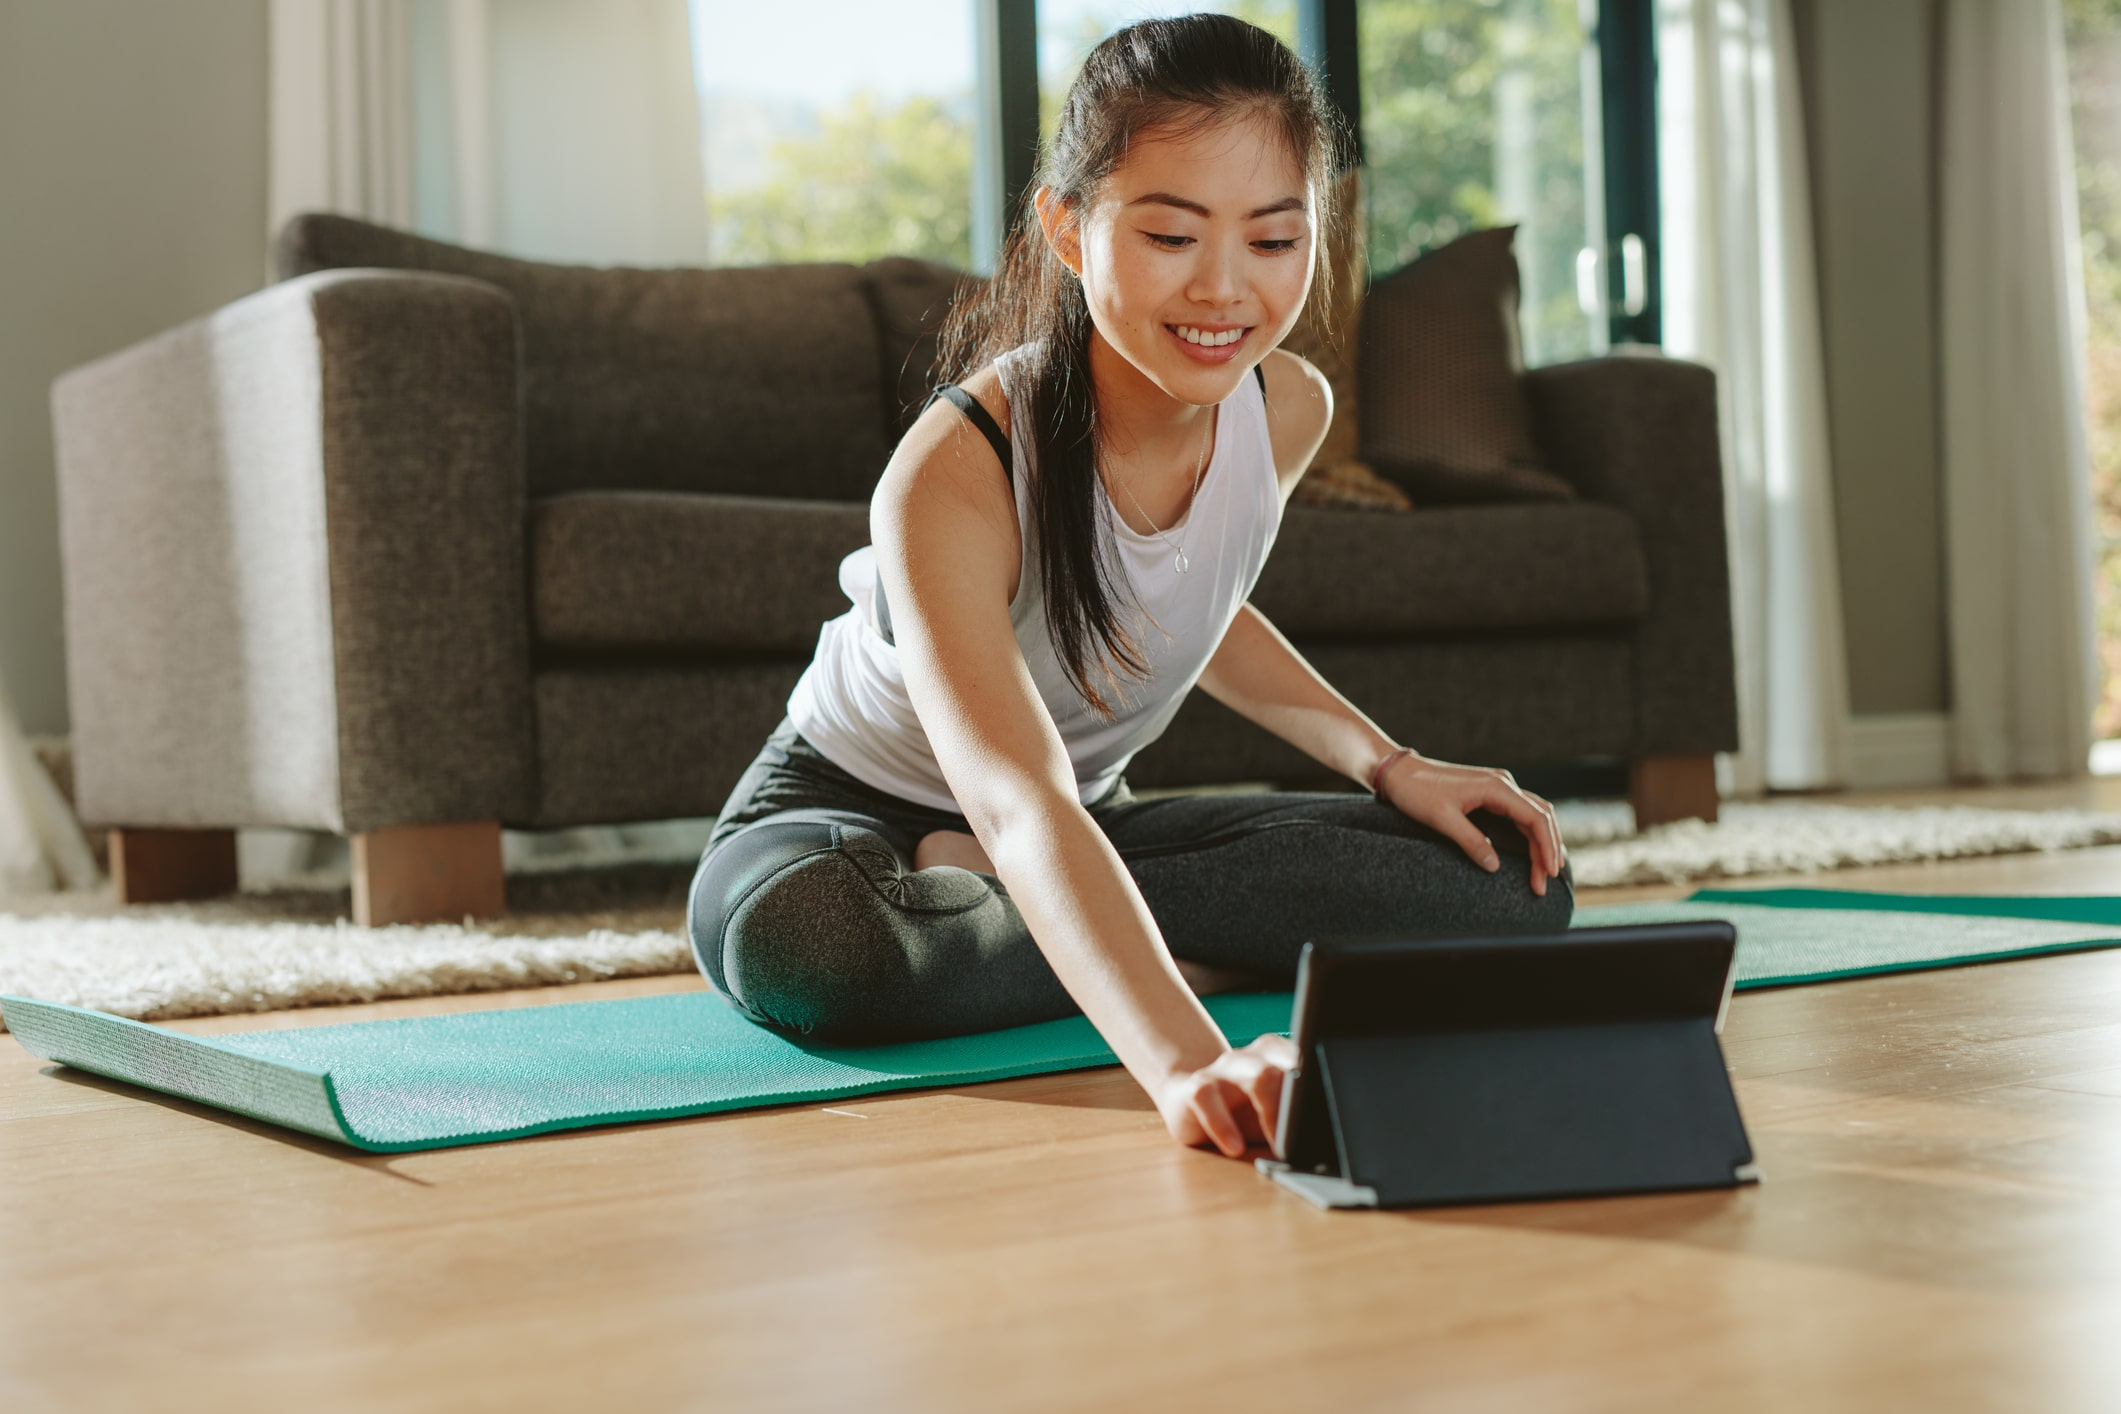 Virtual Wellness: Ways to Keep Employees Engaged During the Pandemic with Lucy Bennett-Baggs, Founder & CEO of Just Challenge